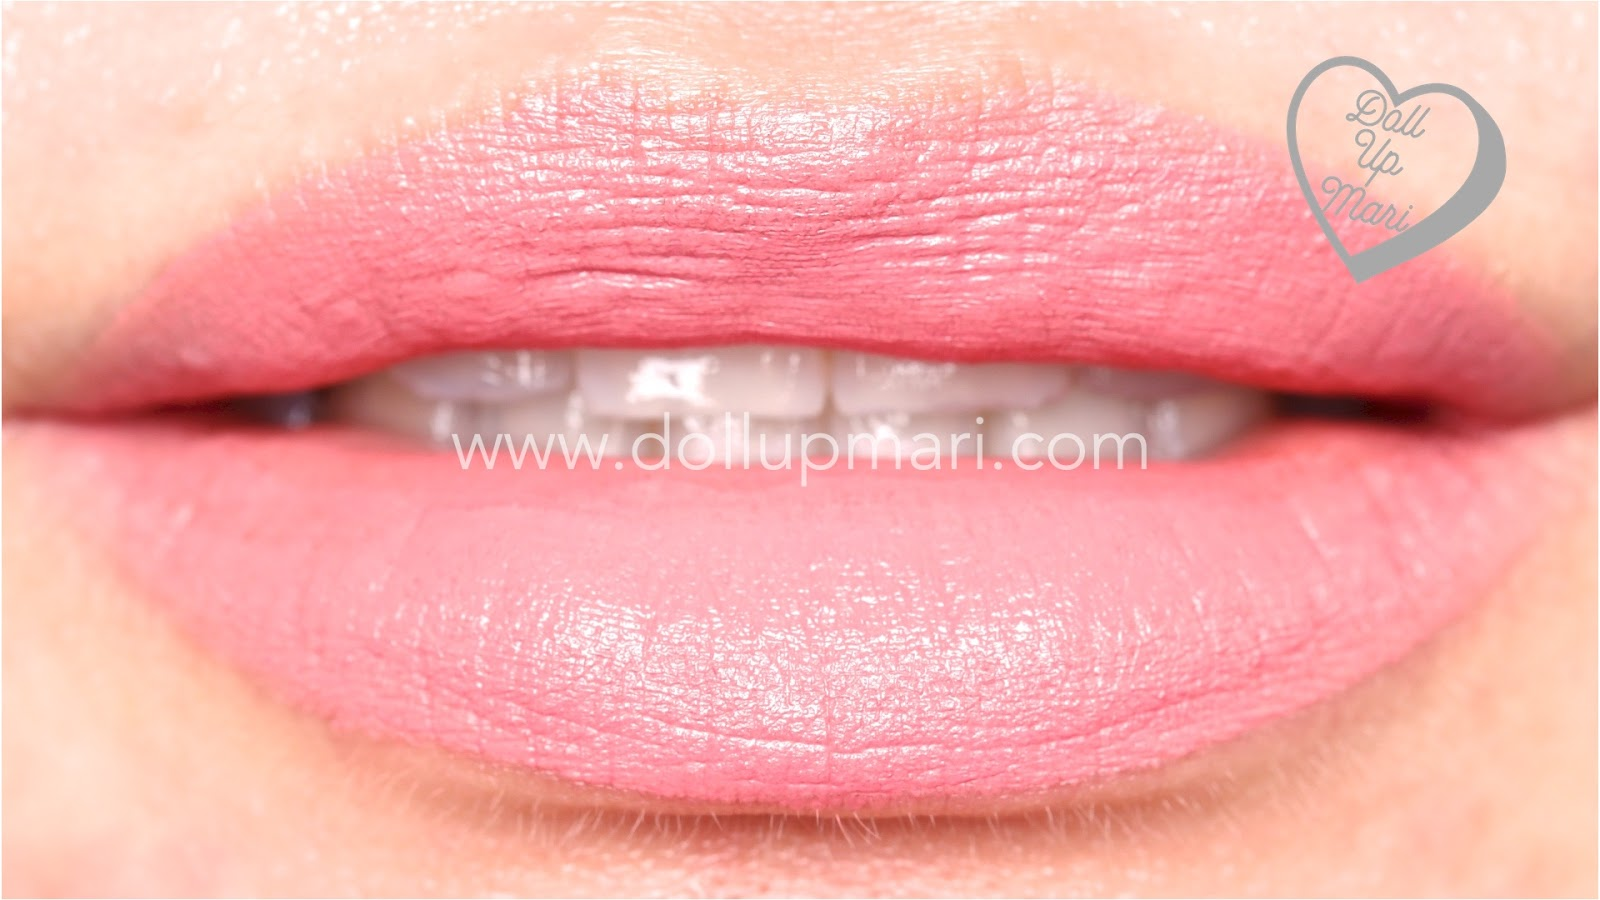 lip swatch of Pure Pink shade of AVON Perfectly Matte Lipstick